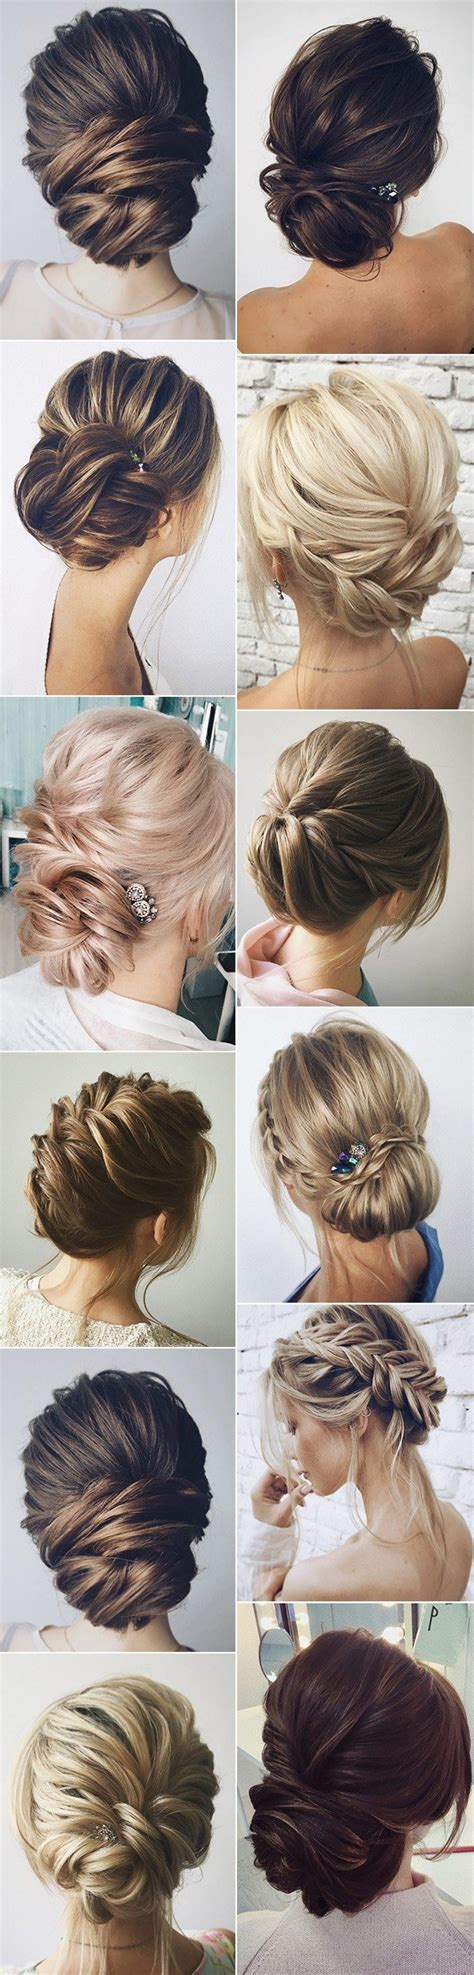 wedding hair updo bridal updos wedding hairstyles